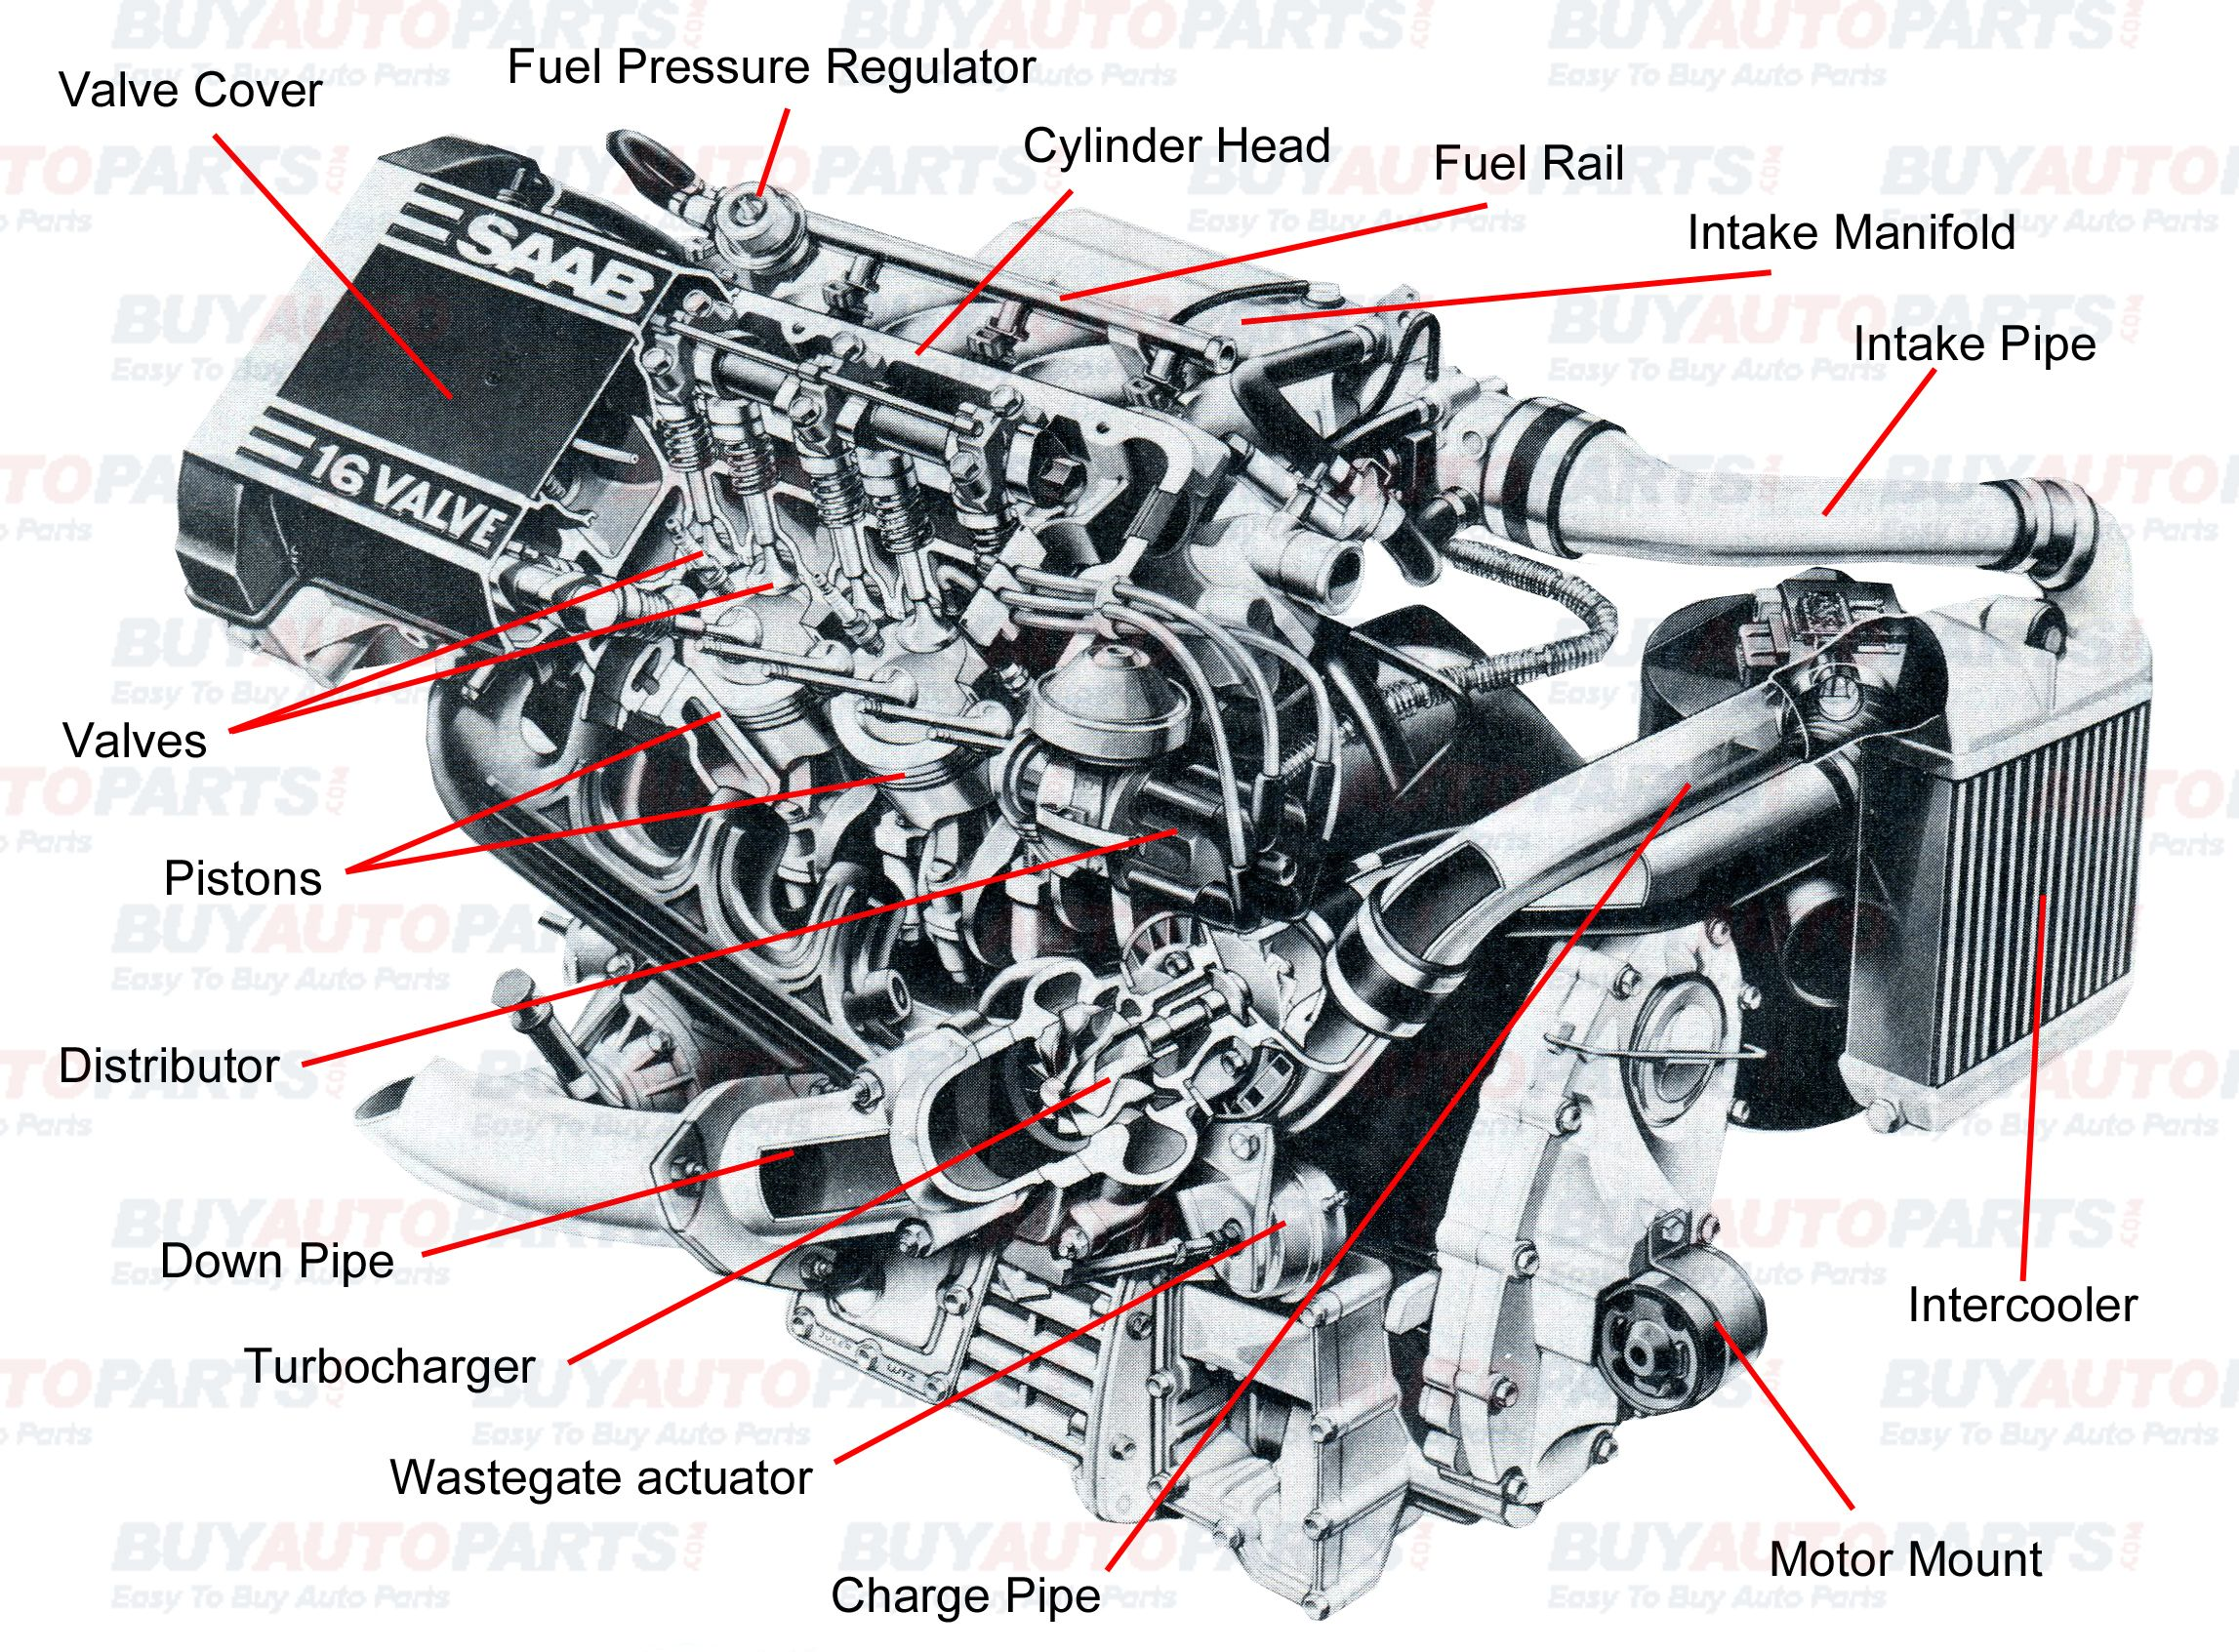 hight resolution of all internal combustion engines have the same basic components the it comes to the working of